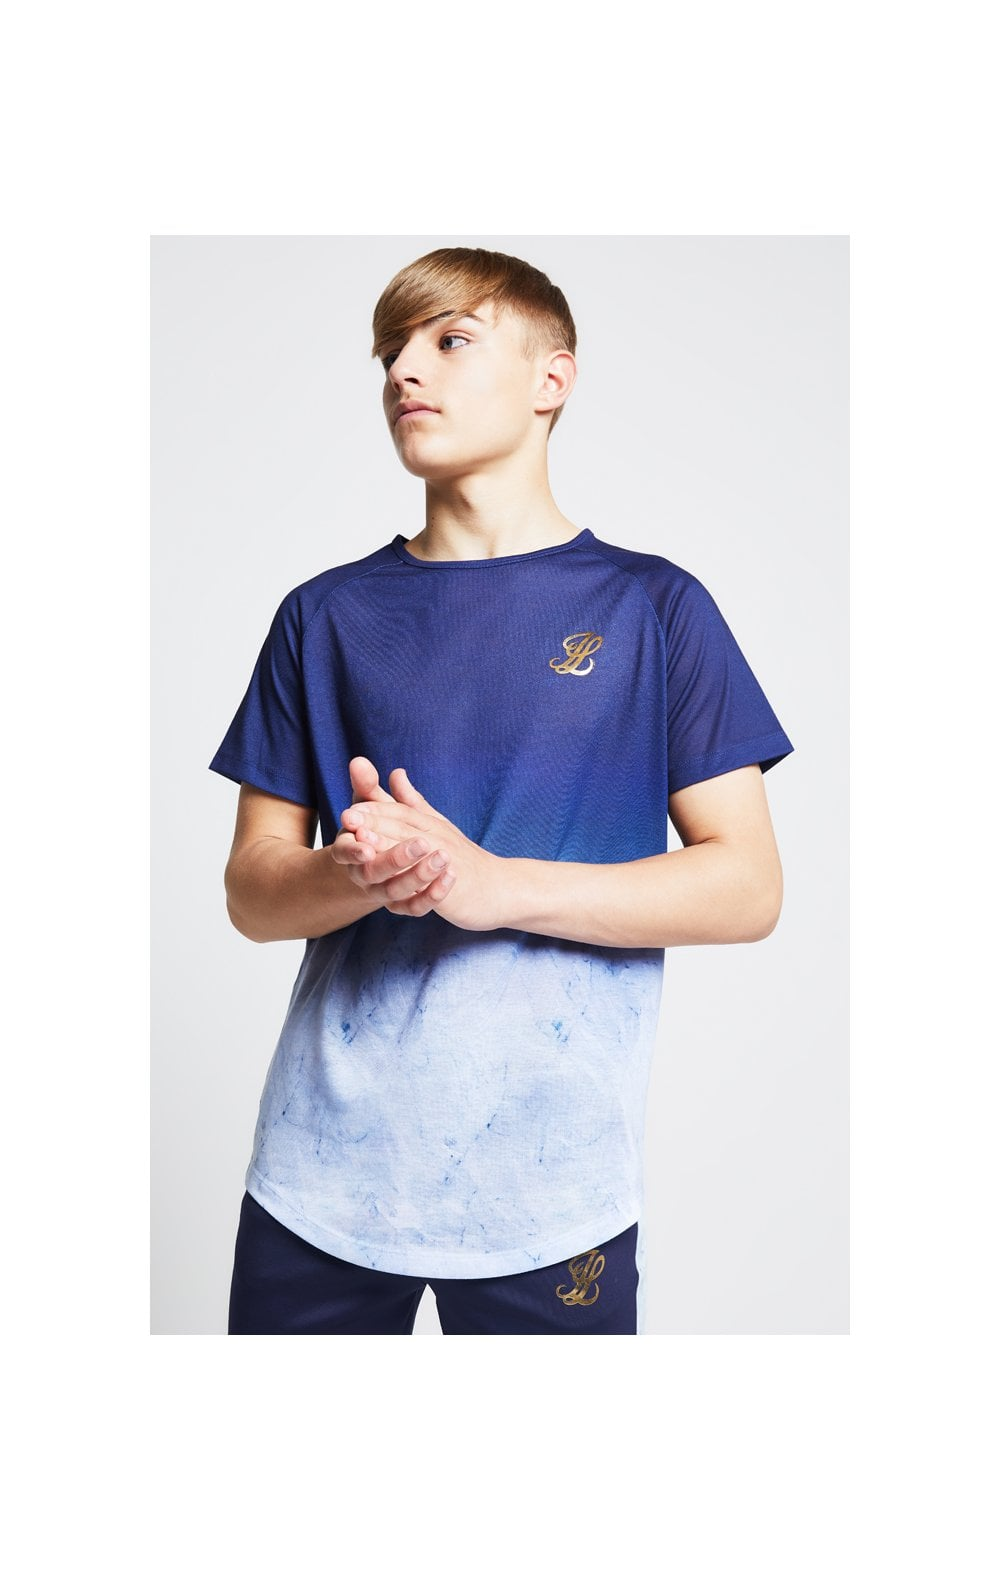 Illusive London Marble Fade Tee – Navy & Marble